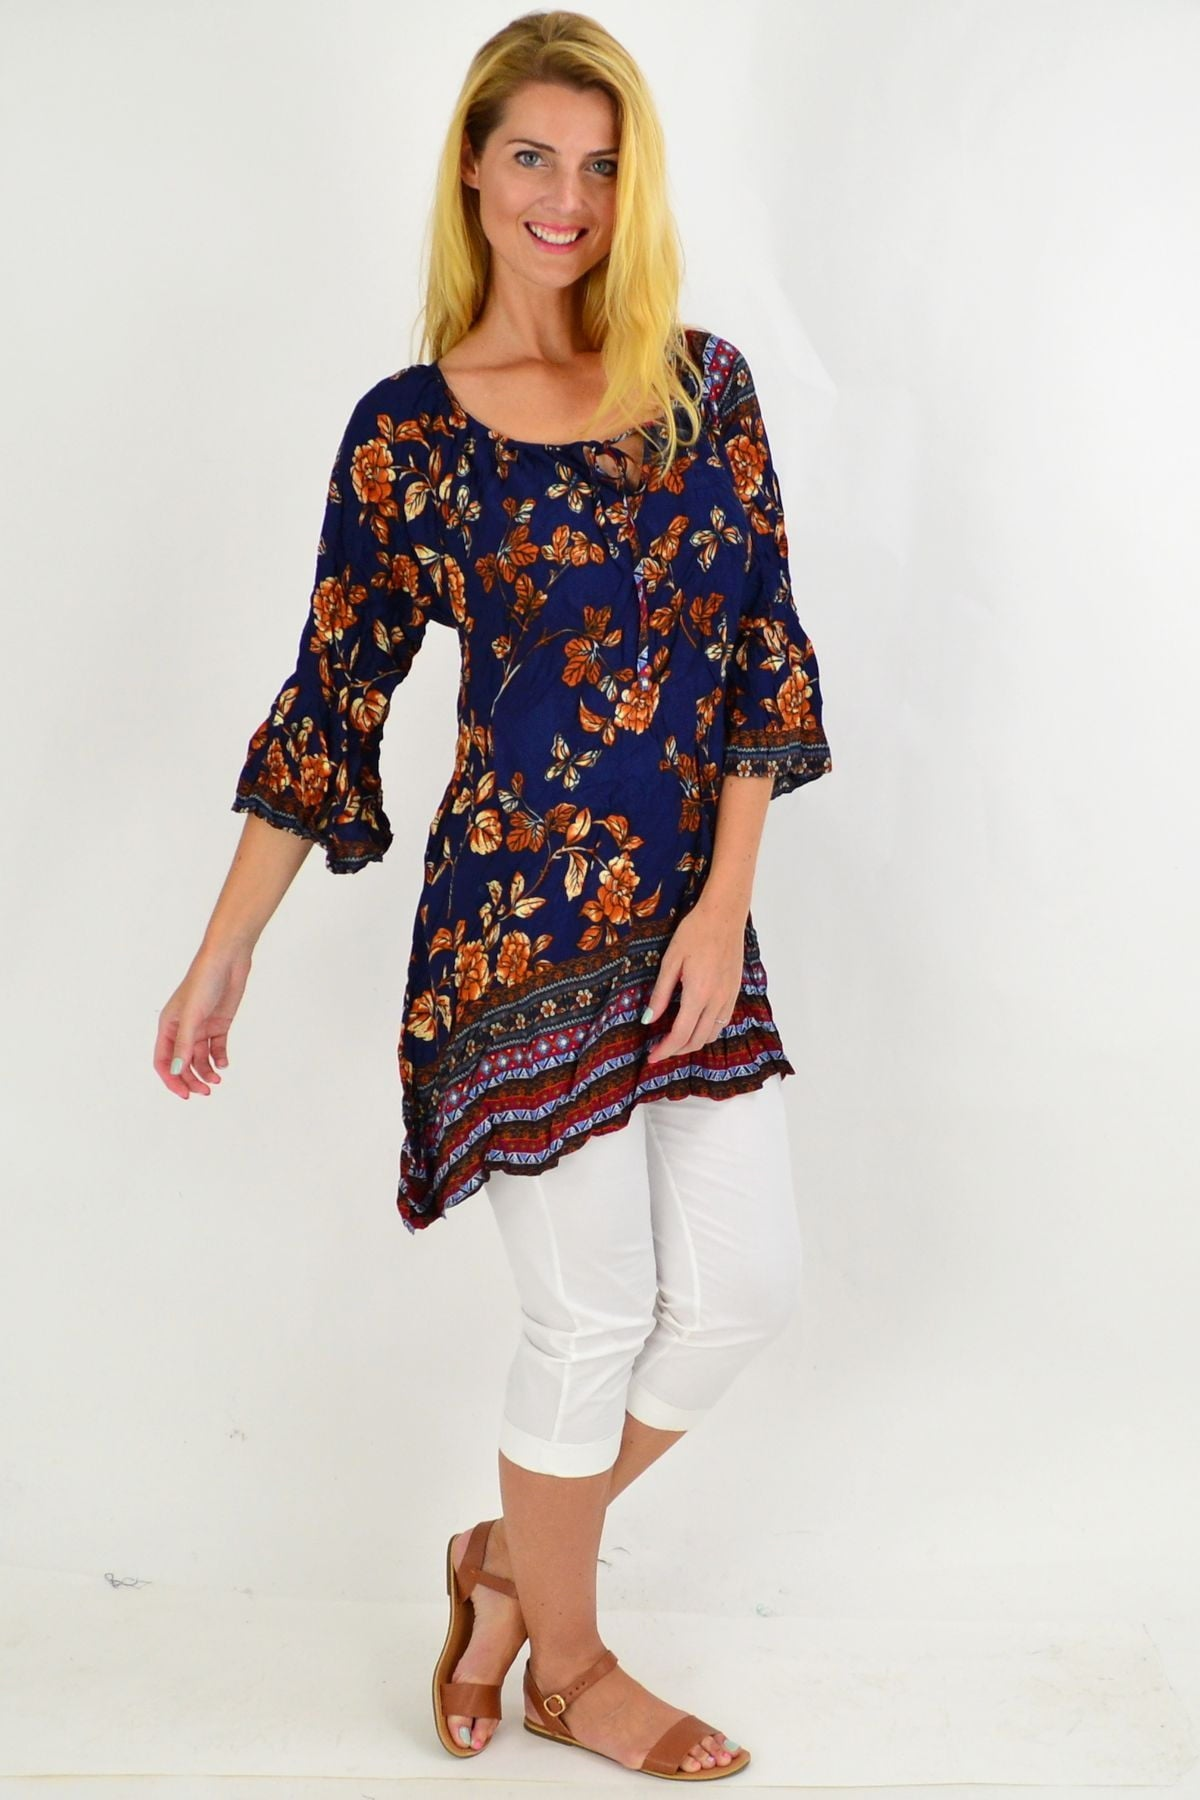 Navy Floral Crinkle Tie Tunic Top | I Love Tunics | Tunic Tops | Tunic | Tunic Dresses  | womens clothing online